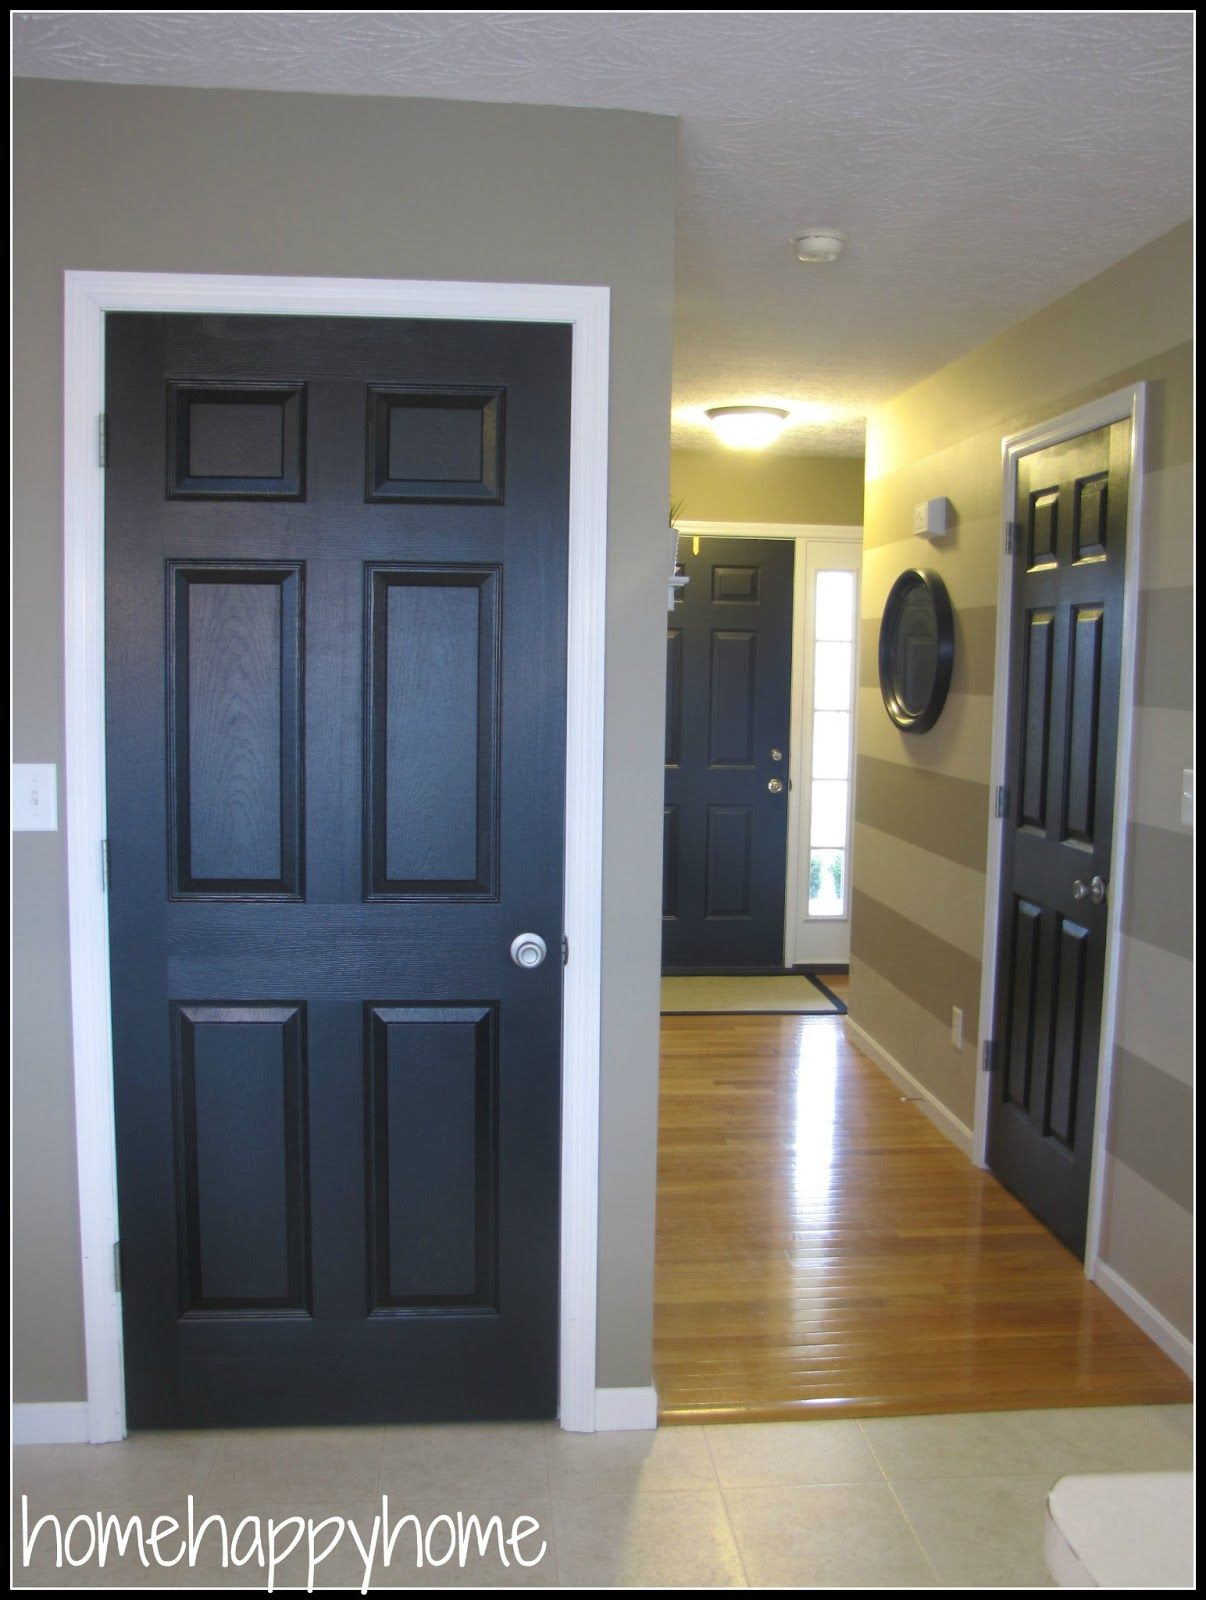 Home happy home black painted interior doors paint for Interior trim and door color ideas